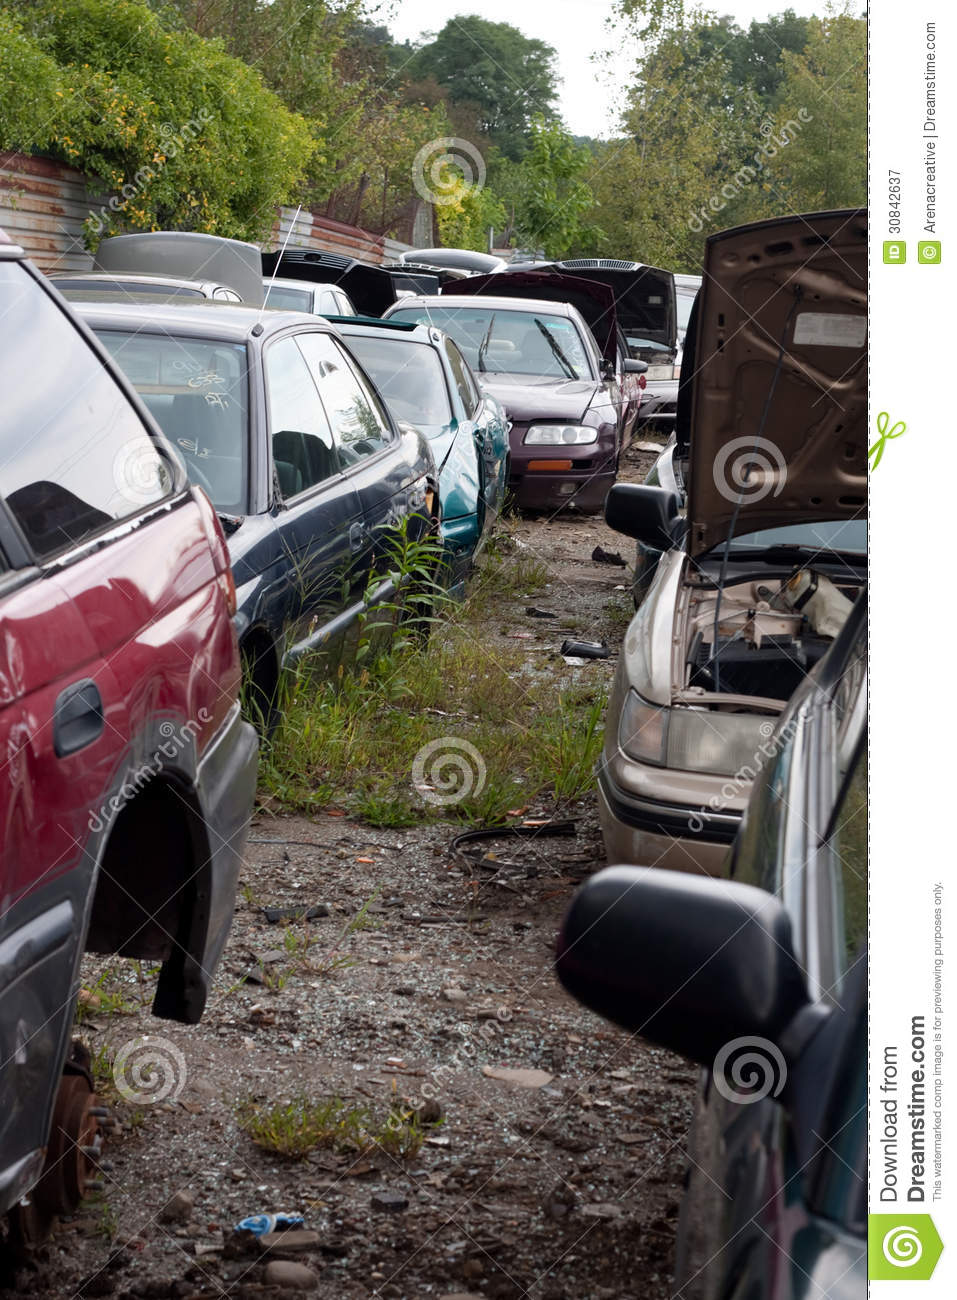 Small Business Ideas for a Salvage Yard